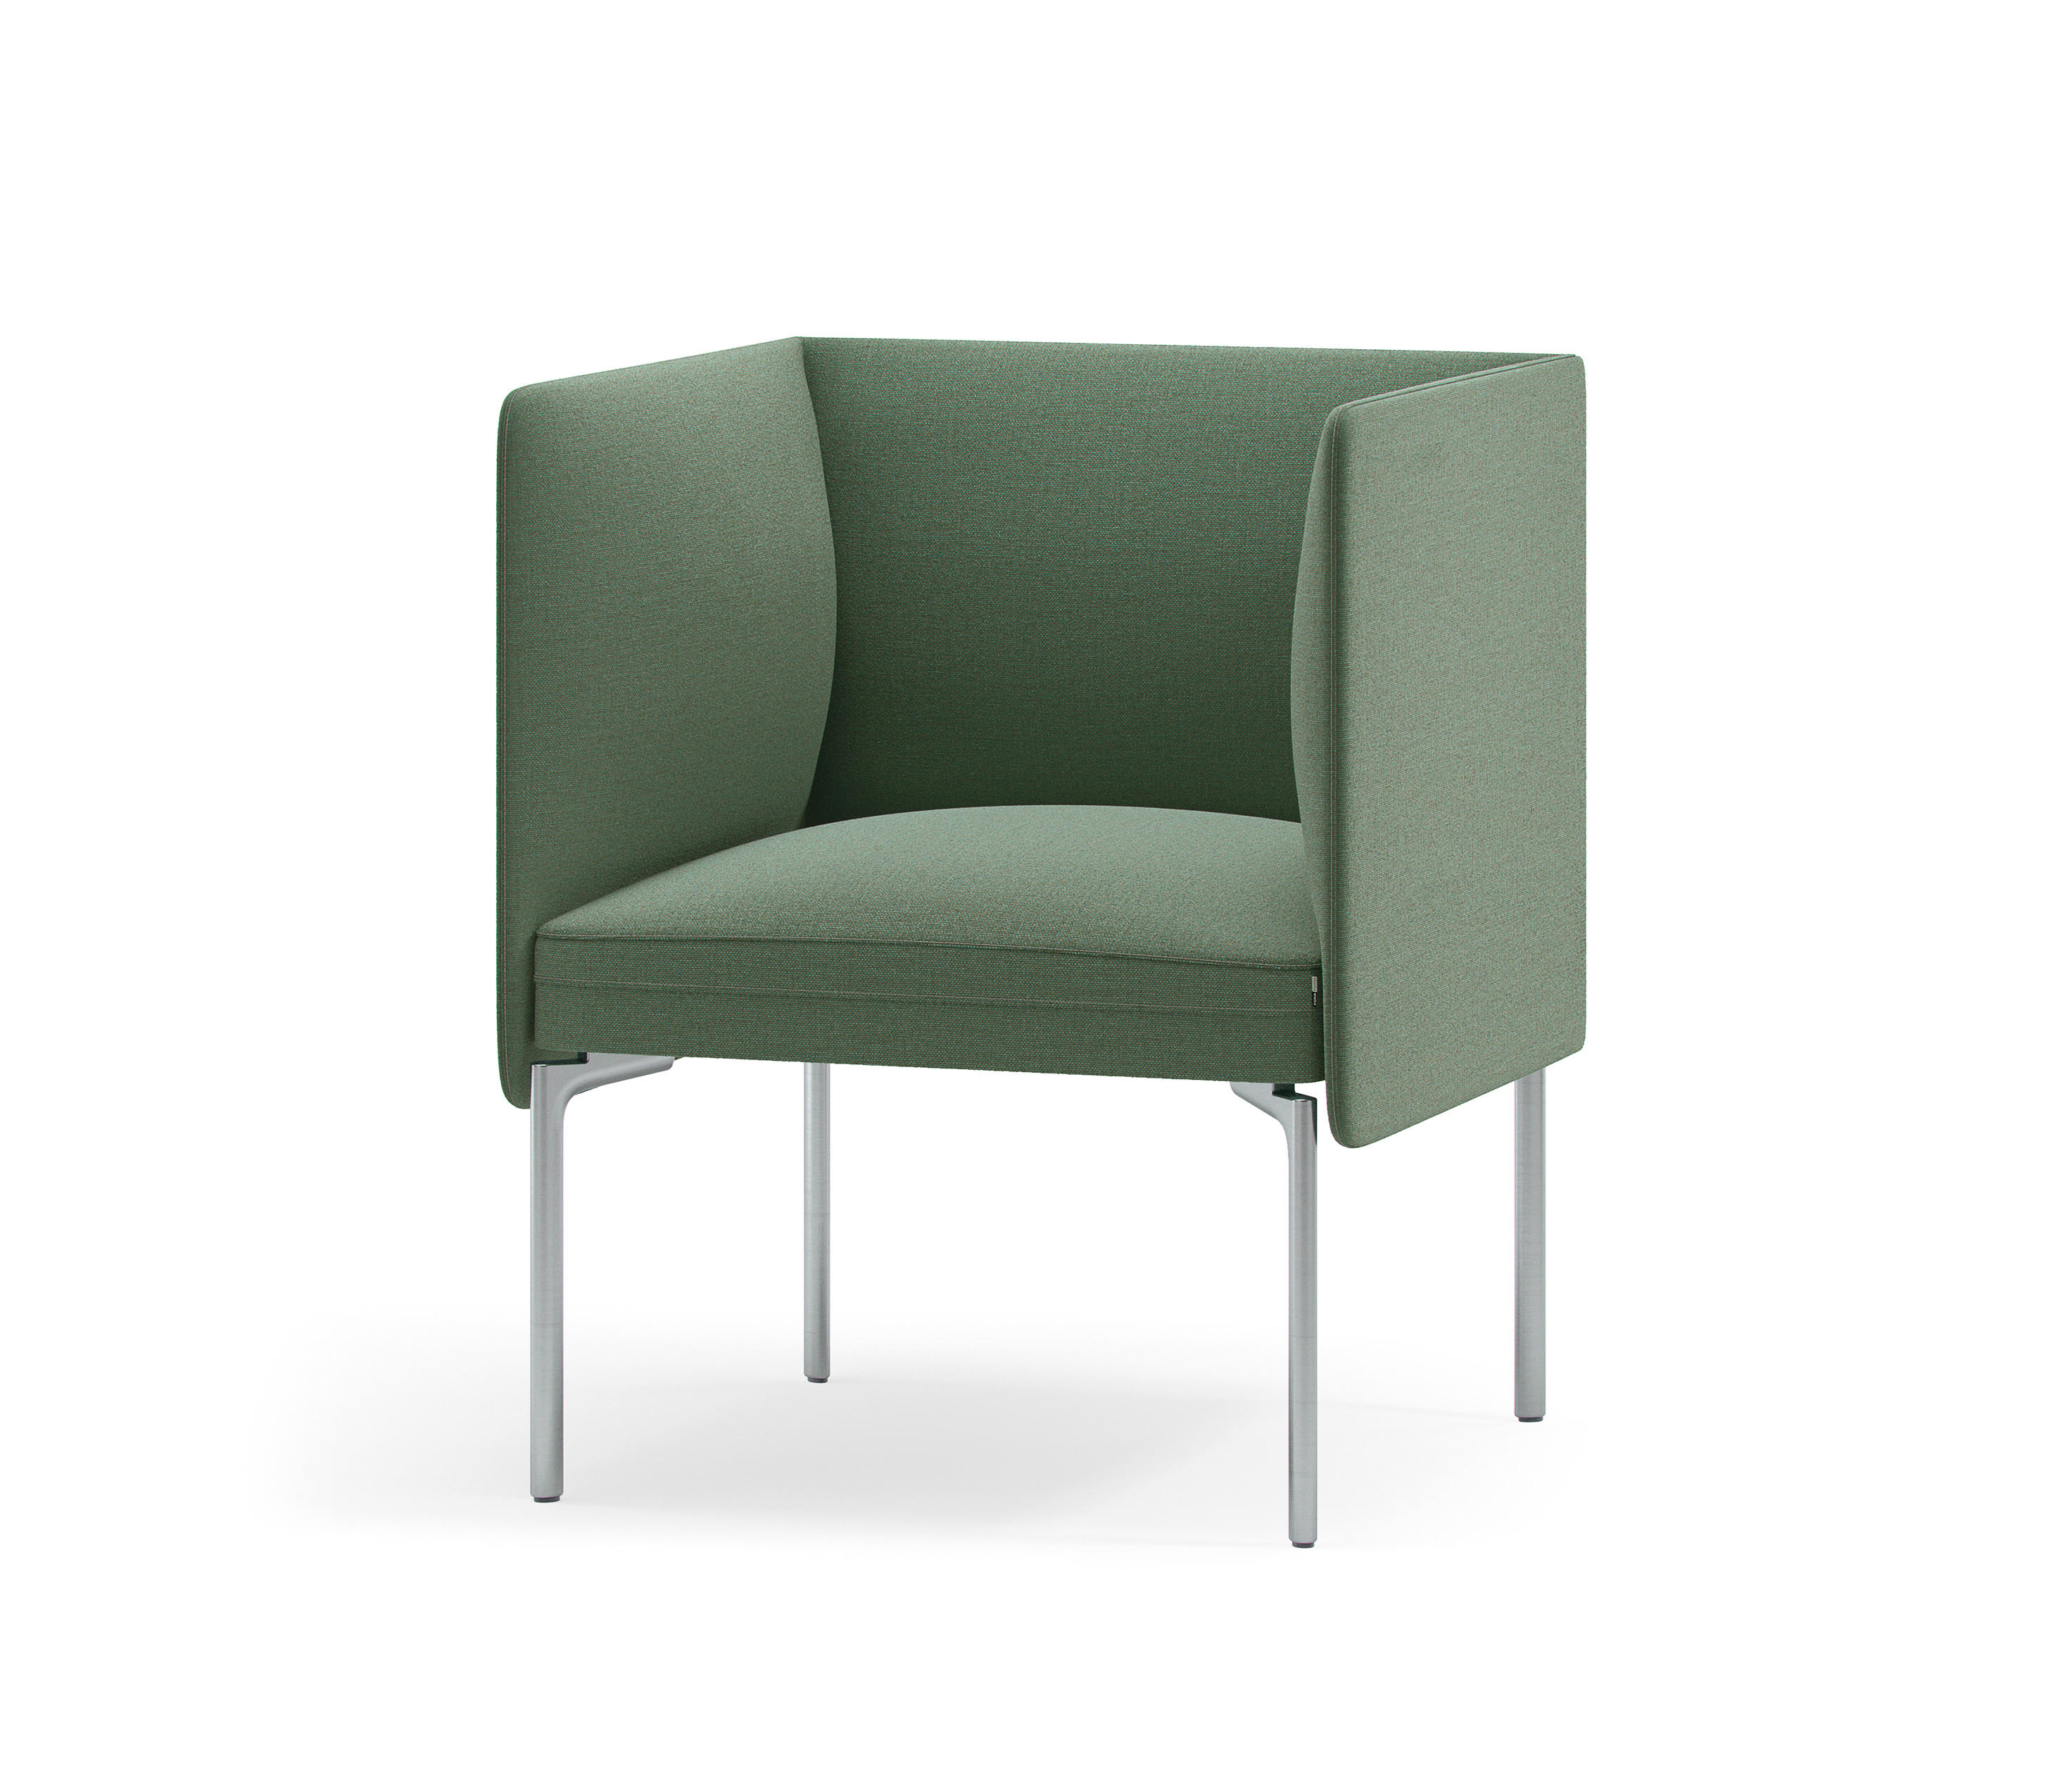 Senso Chair Armchairs From Fora Form Architonic